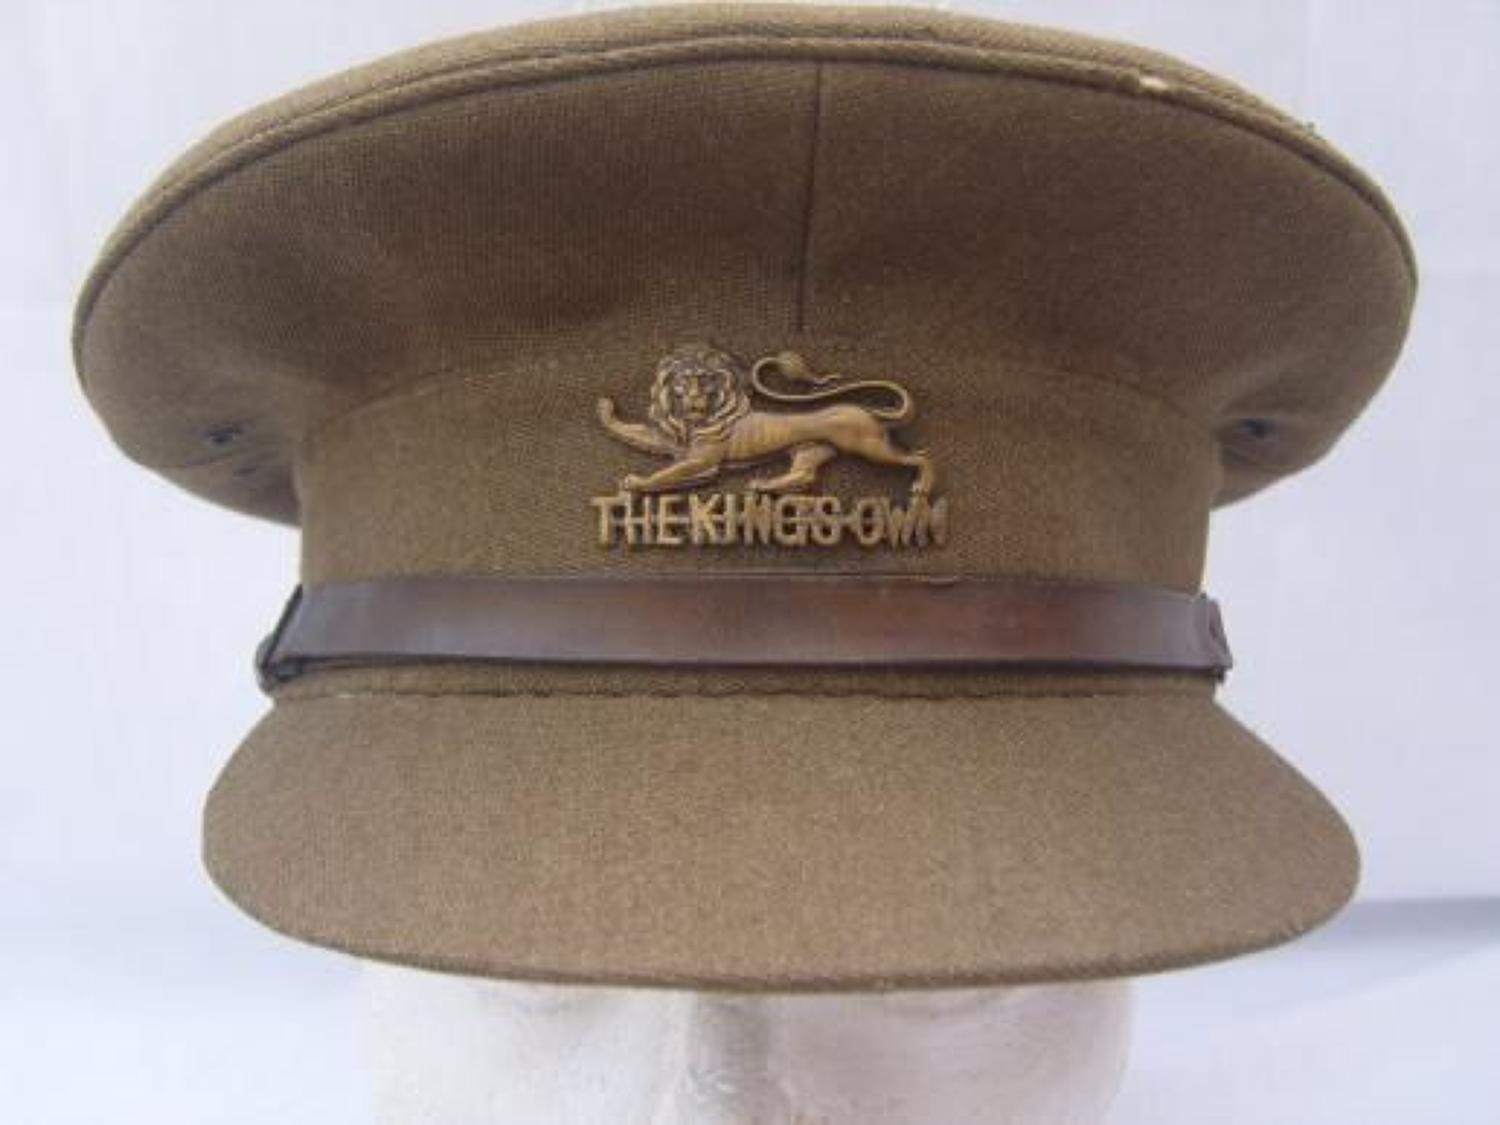 WW2 BRITISH OFFICERS CAP: THE KINGS OWN ROYAL LANCASTER